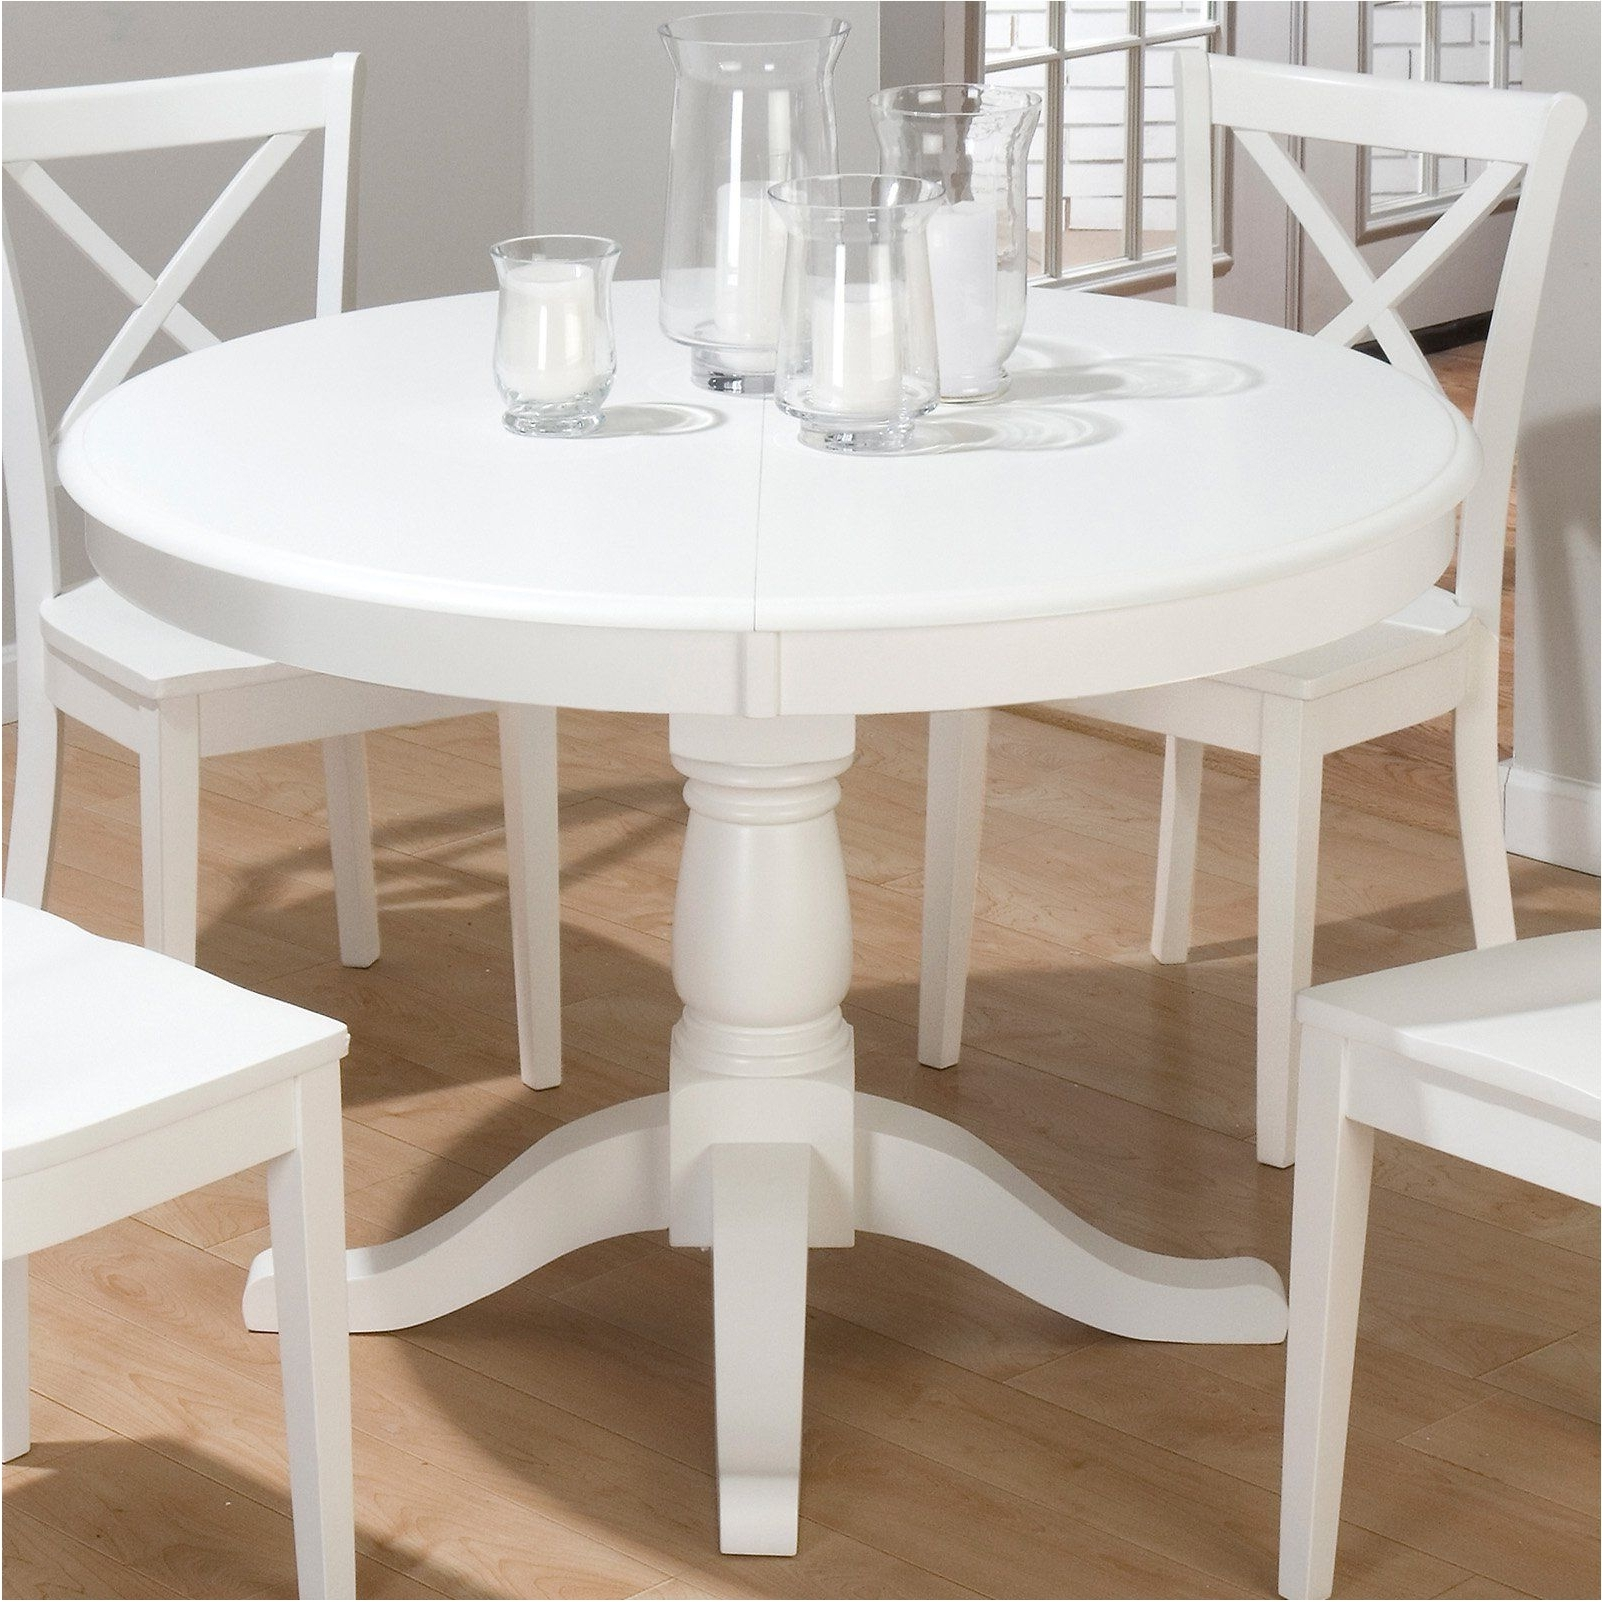 Small Round White Dining Tables Within Most Popular Magnificent Decorative Small Round White Dining Table 17 Kitchen (View 21 of 25)